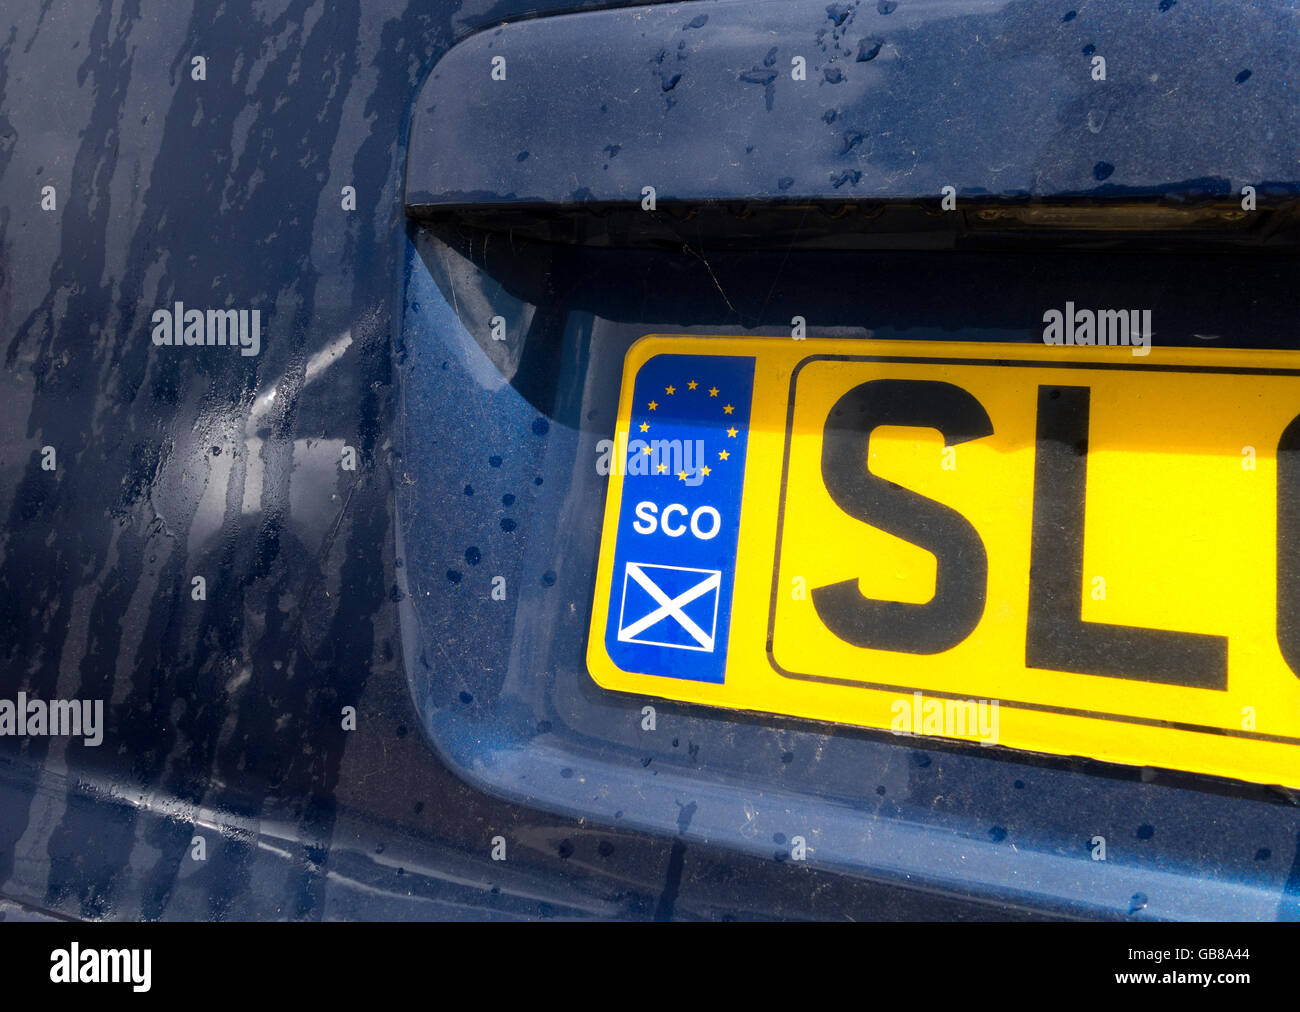 https://c7.alamy.com/comp/GB8A44/scottish-license-plate-or-number-plate-numberplate-with-scottish-eu-GB8A44.jpg